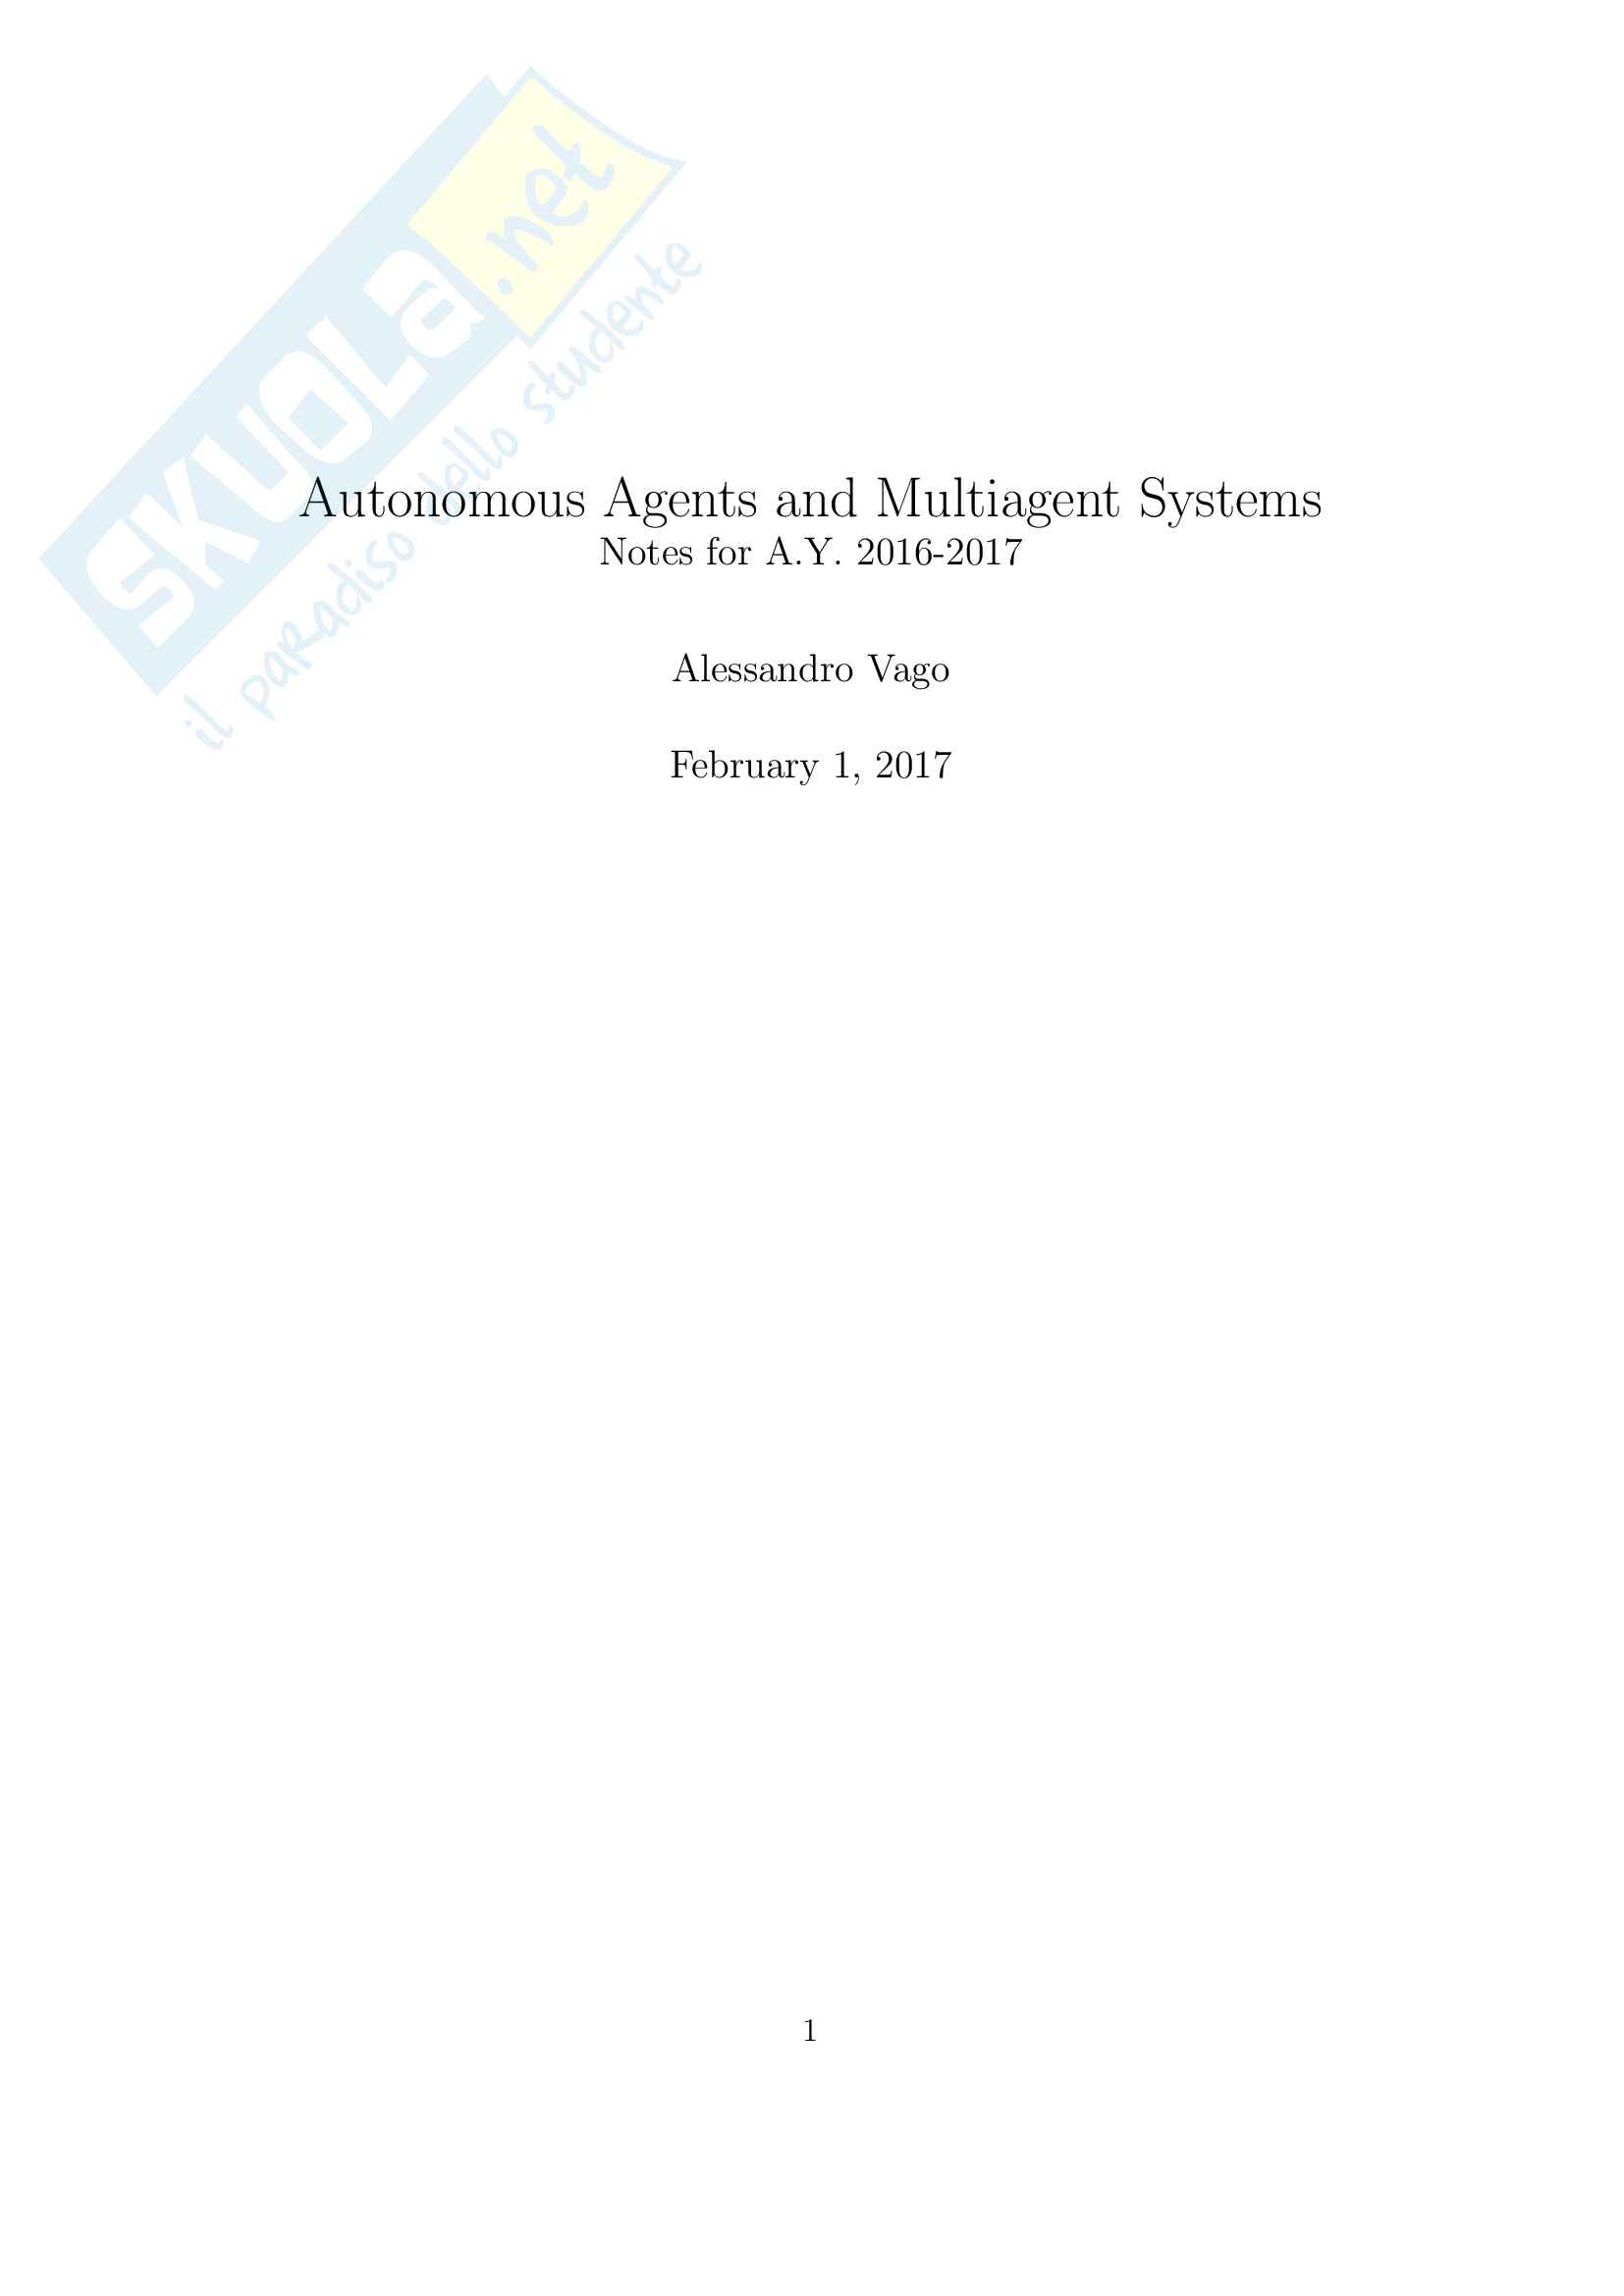 Autonomous Agents and Multiagent Systems, prof. Amigoni, Polimi